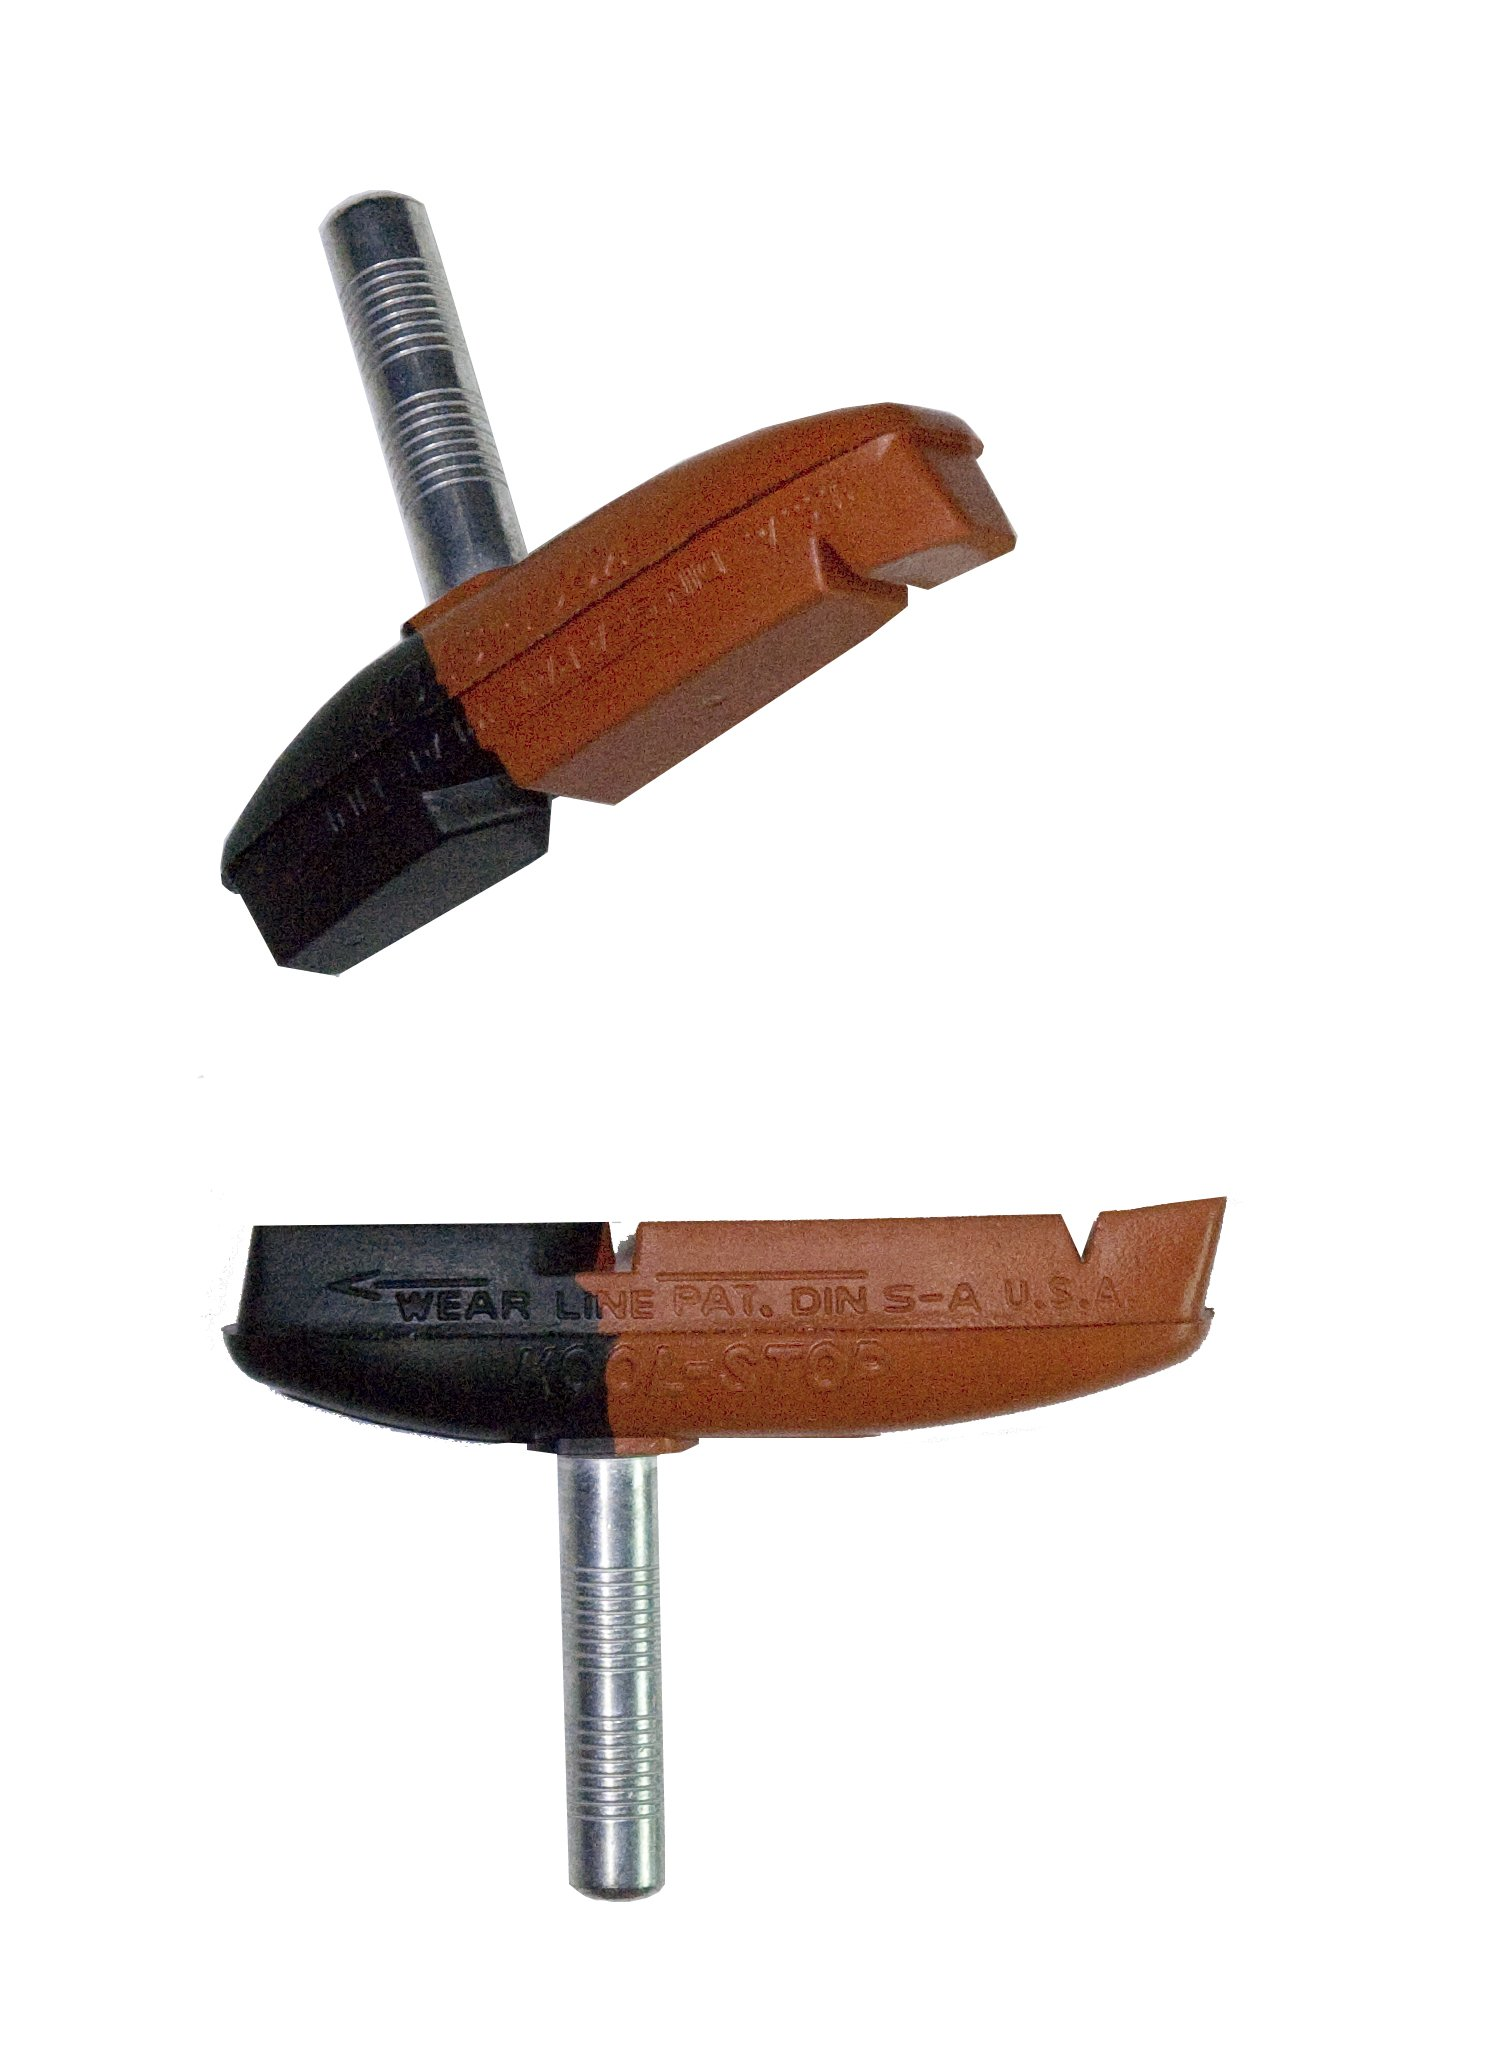 Kool Stop Cantilever Thinline, Cantilever Brake Pads, Non-Threaded Posts, Dual, Black, Pair by Kool Stop